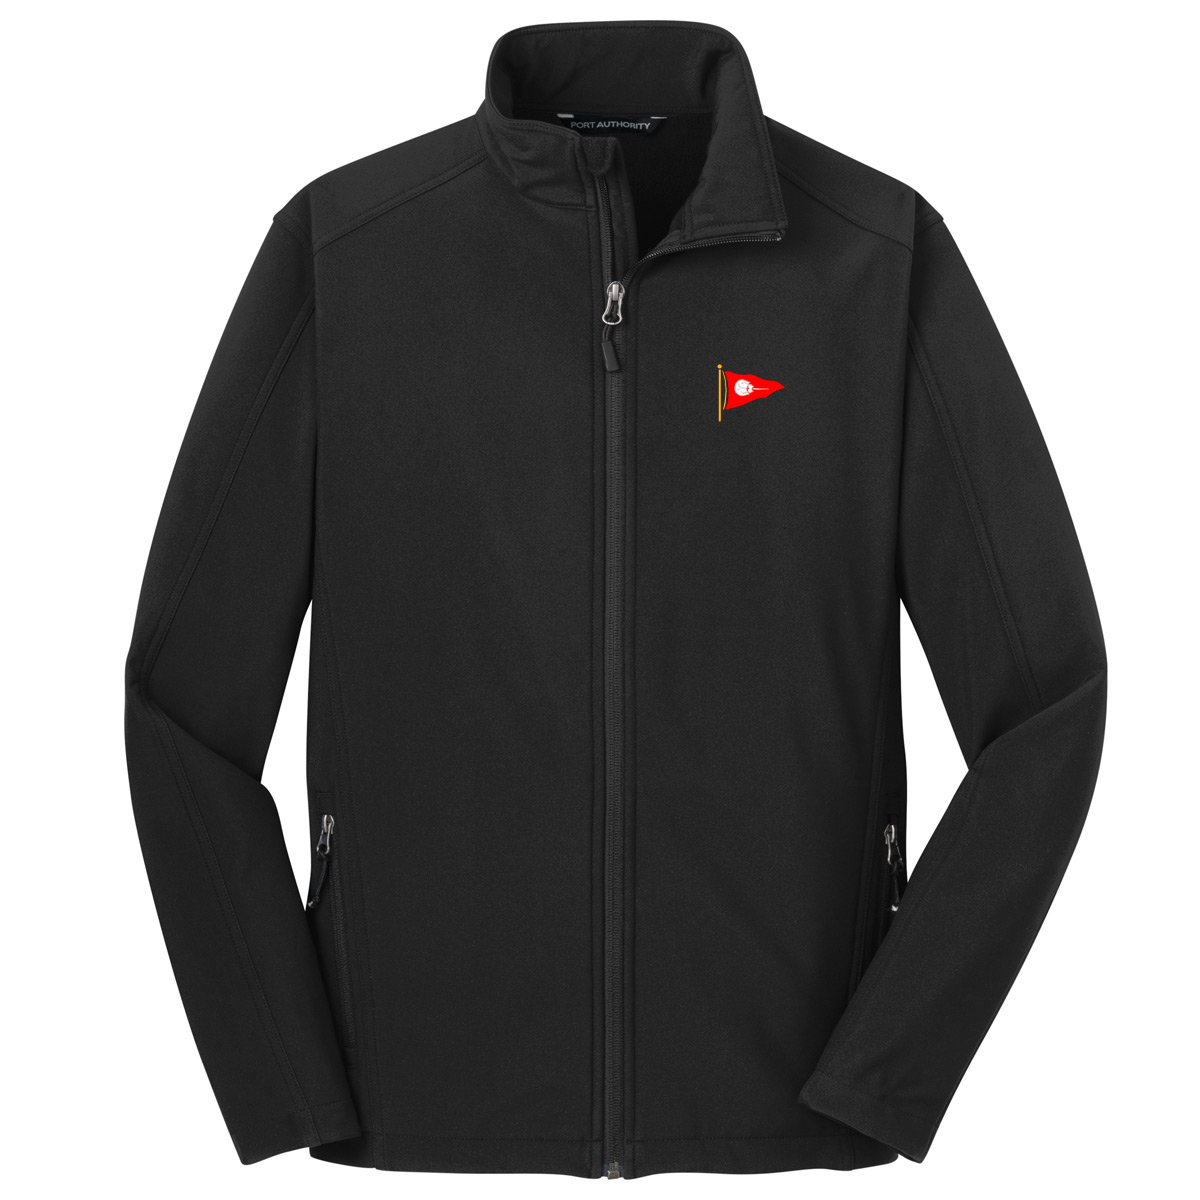 SHYC - MEN'S SOFTSHELL JACKET